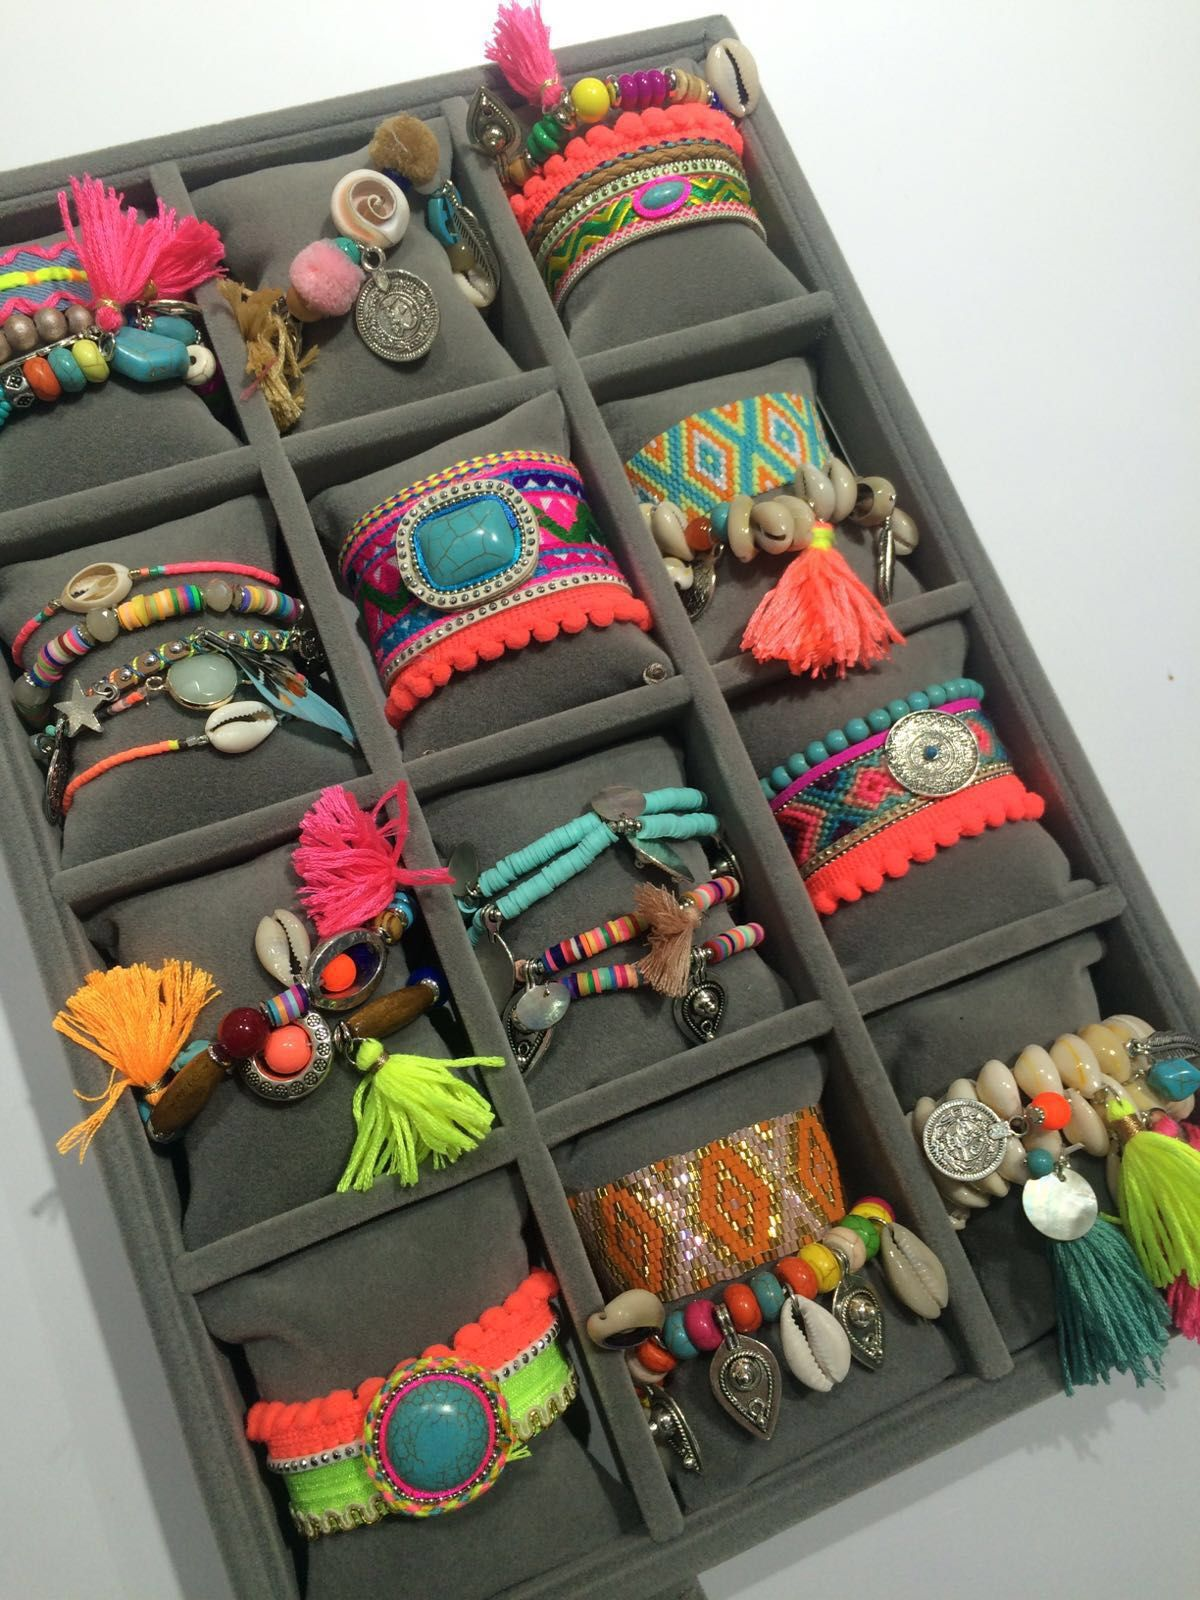 Bracelet Organizer Ideas Photograph Bracelets On A Display Pillow To Make It Easier To